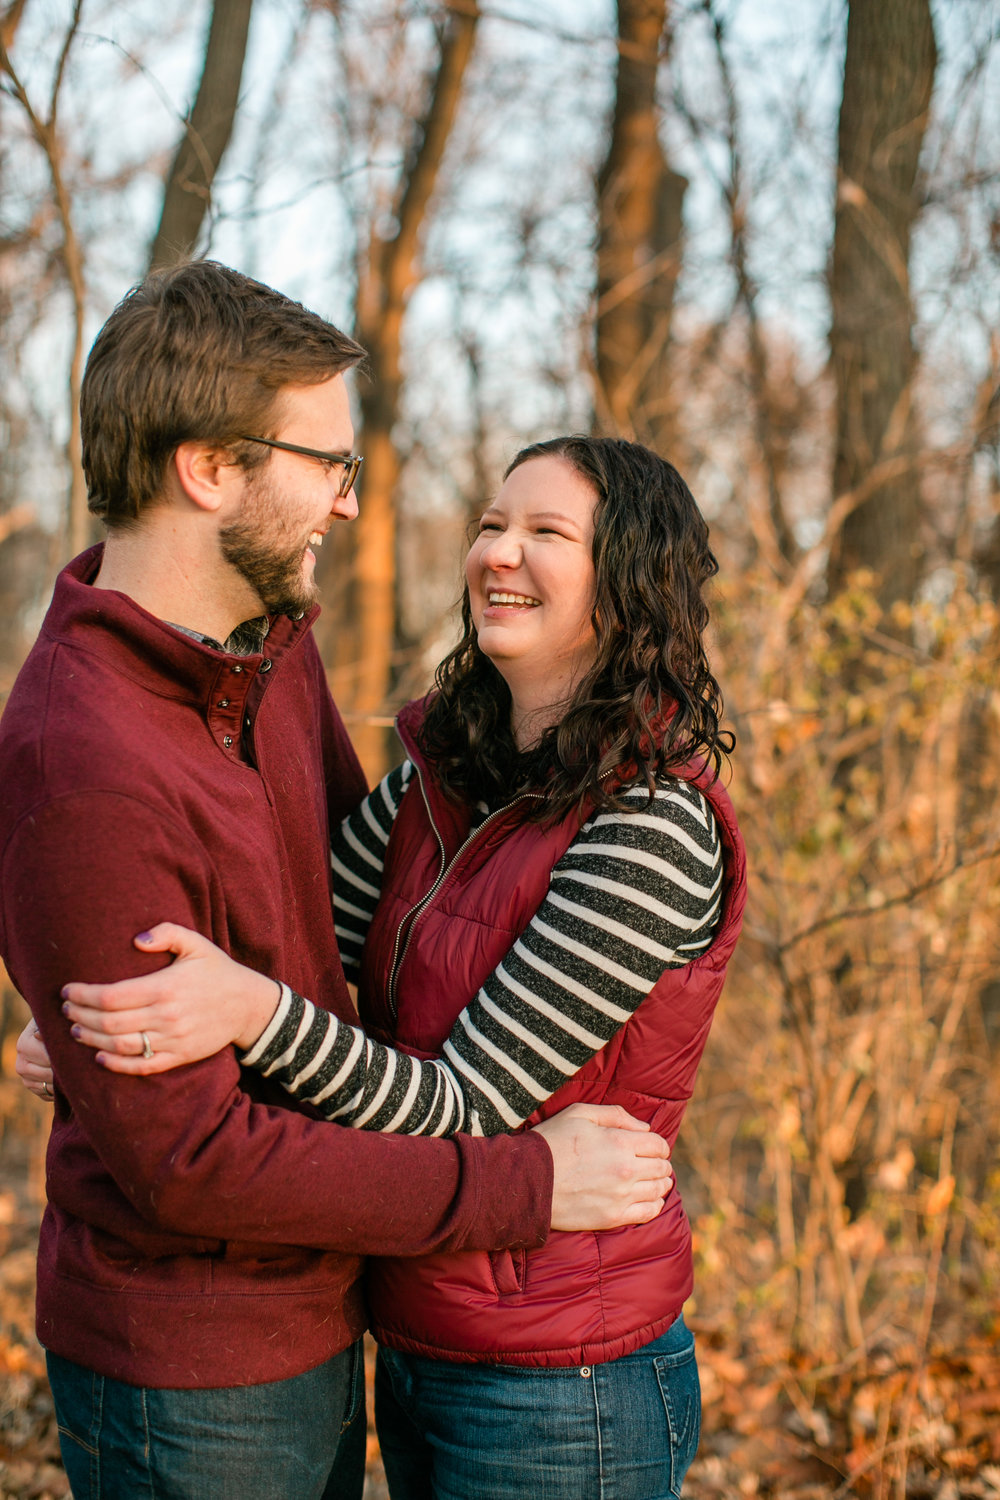 cute couple engagement photos with dog De Moines Ankeny area wedding photographers